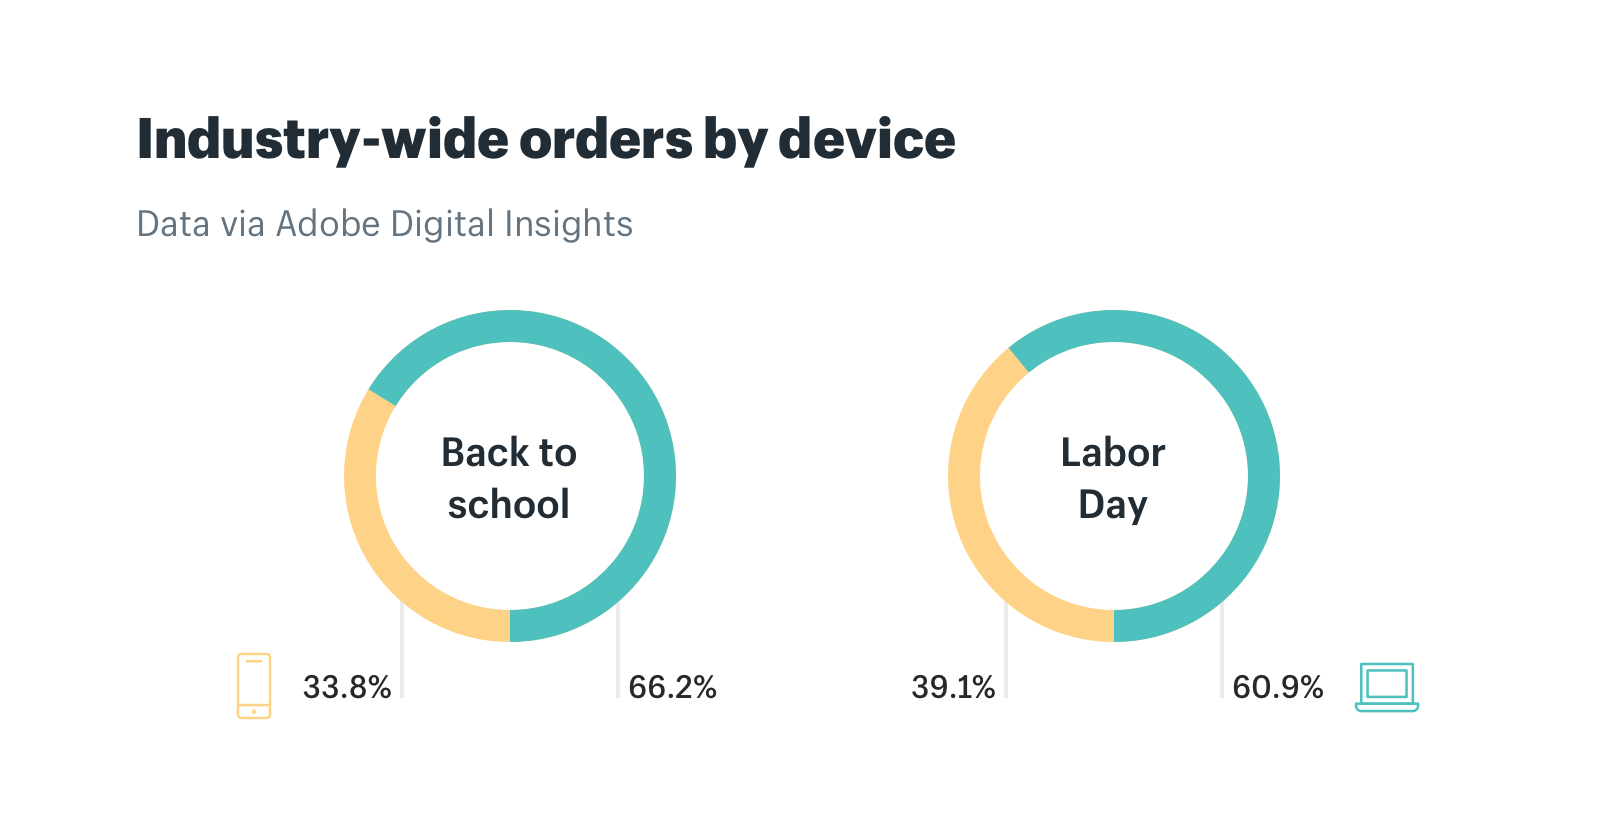 Industry-wide back to school orders by device